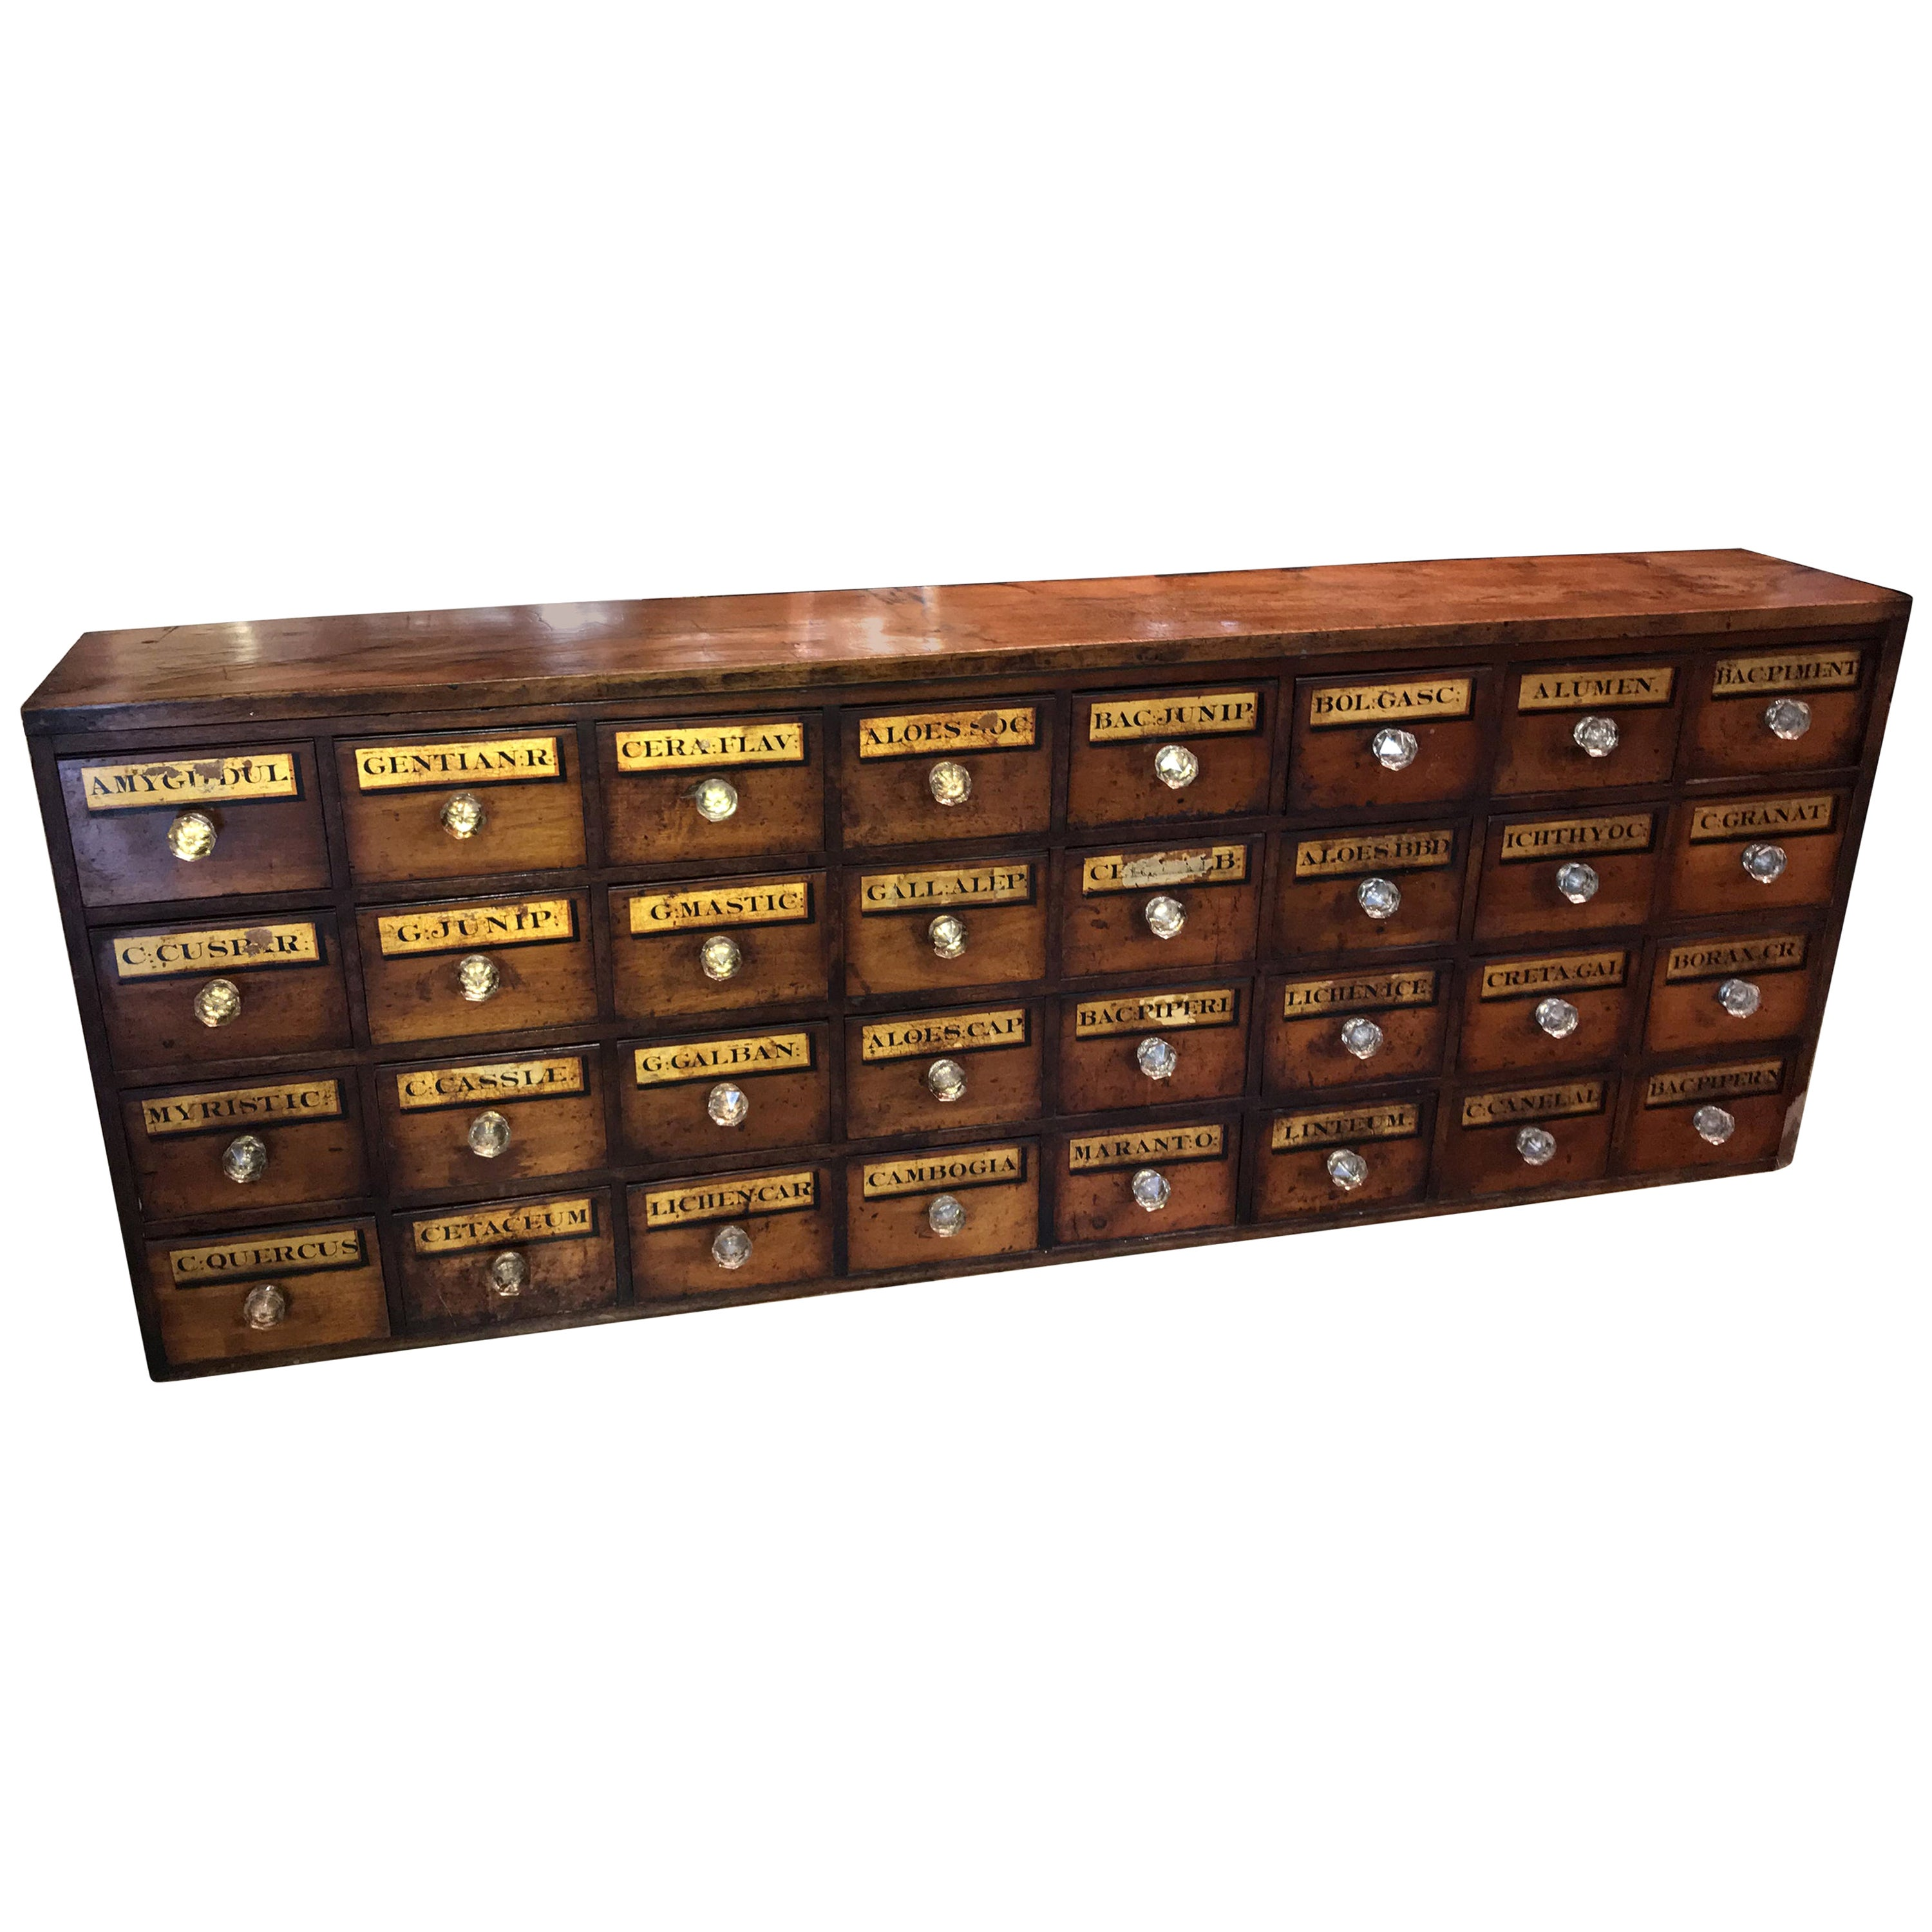 Late 19th Century Wooden 32-Drawer Chemist Apothecary Chest